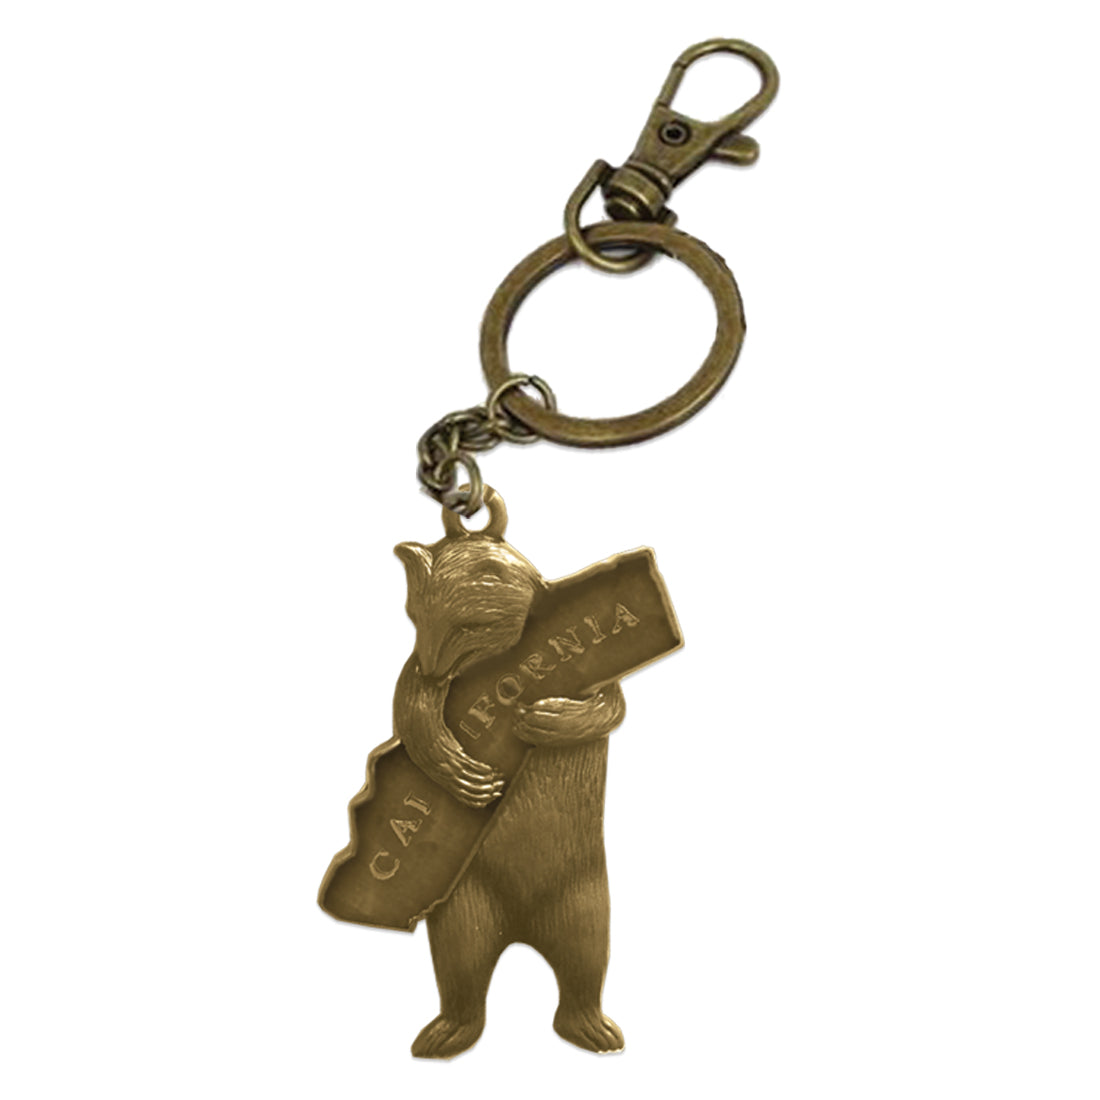 California Bear Hug Keychain